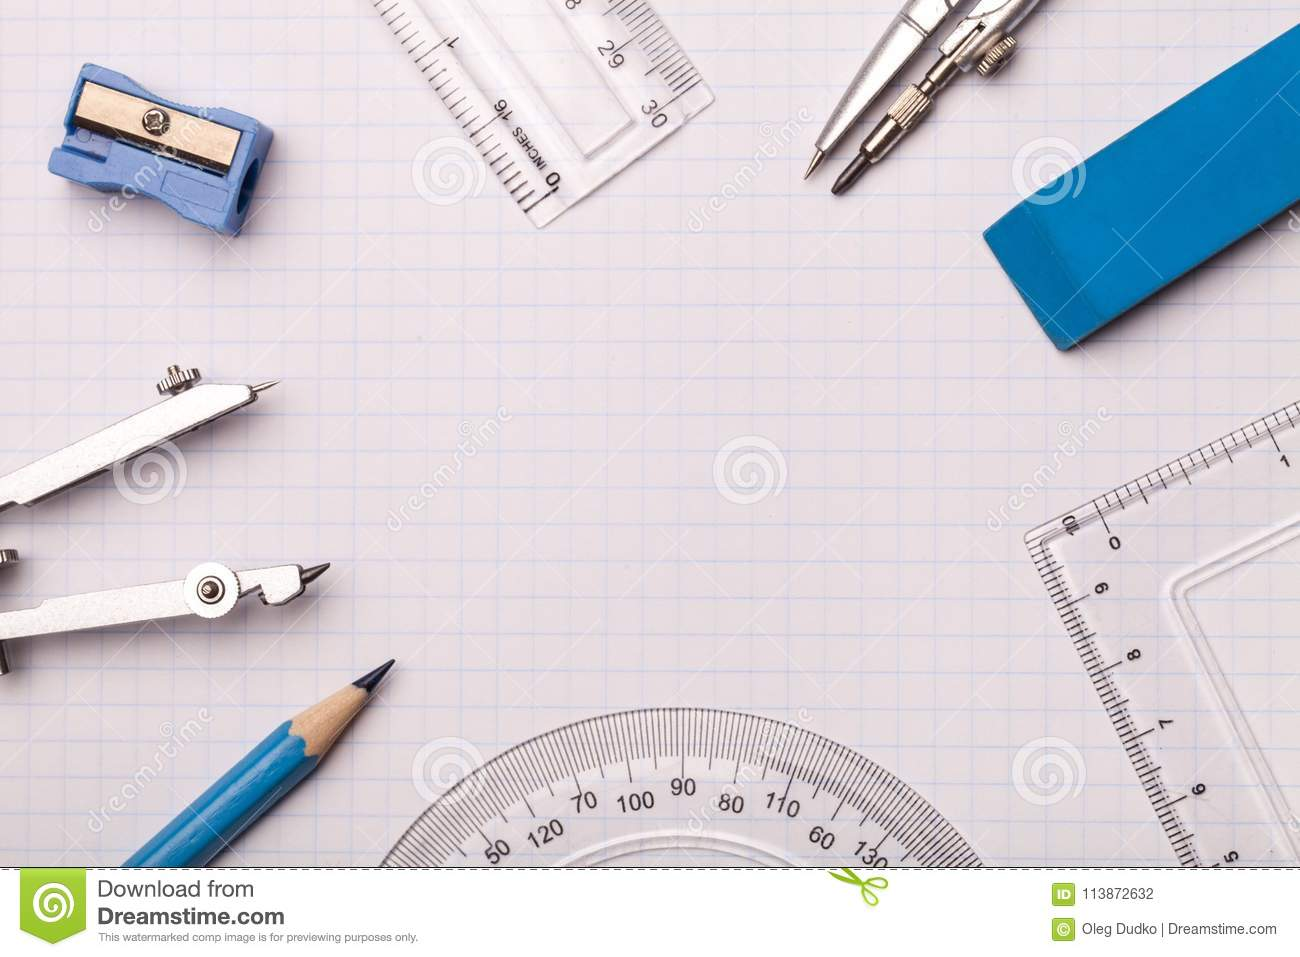 mathematical accessories stock photo image of tool 113872632